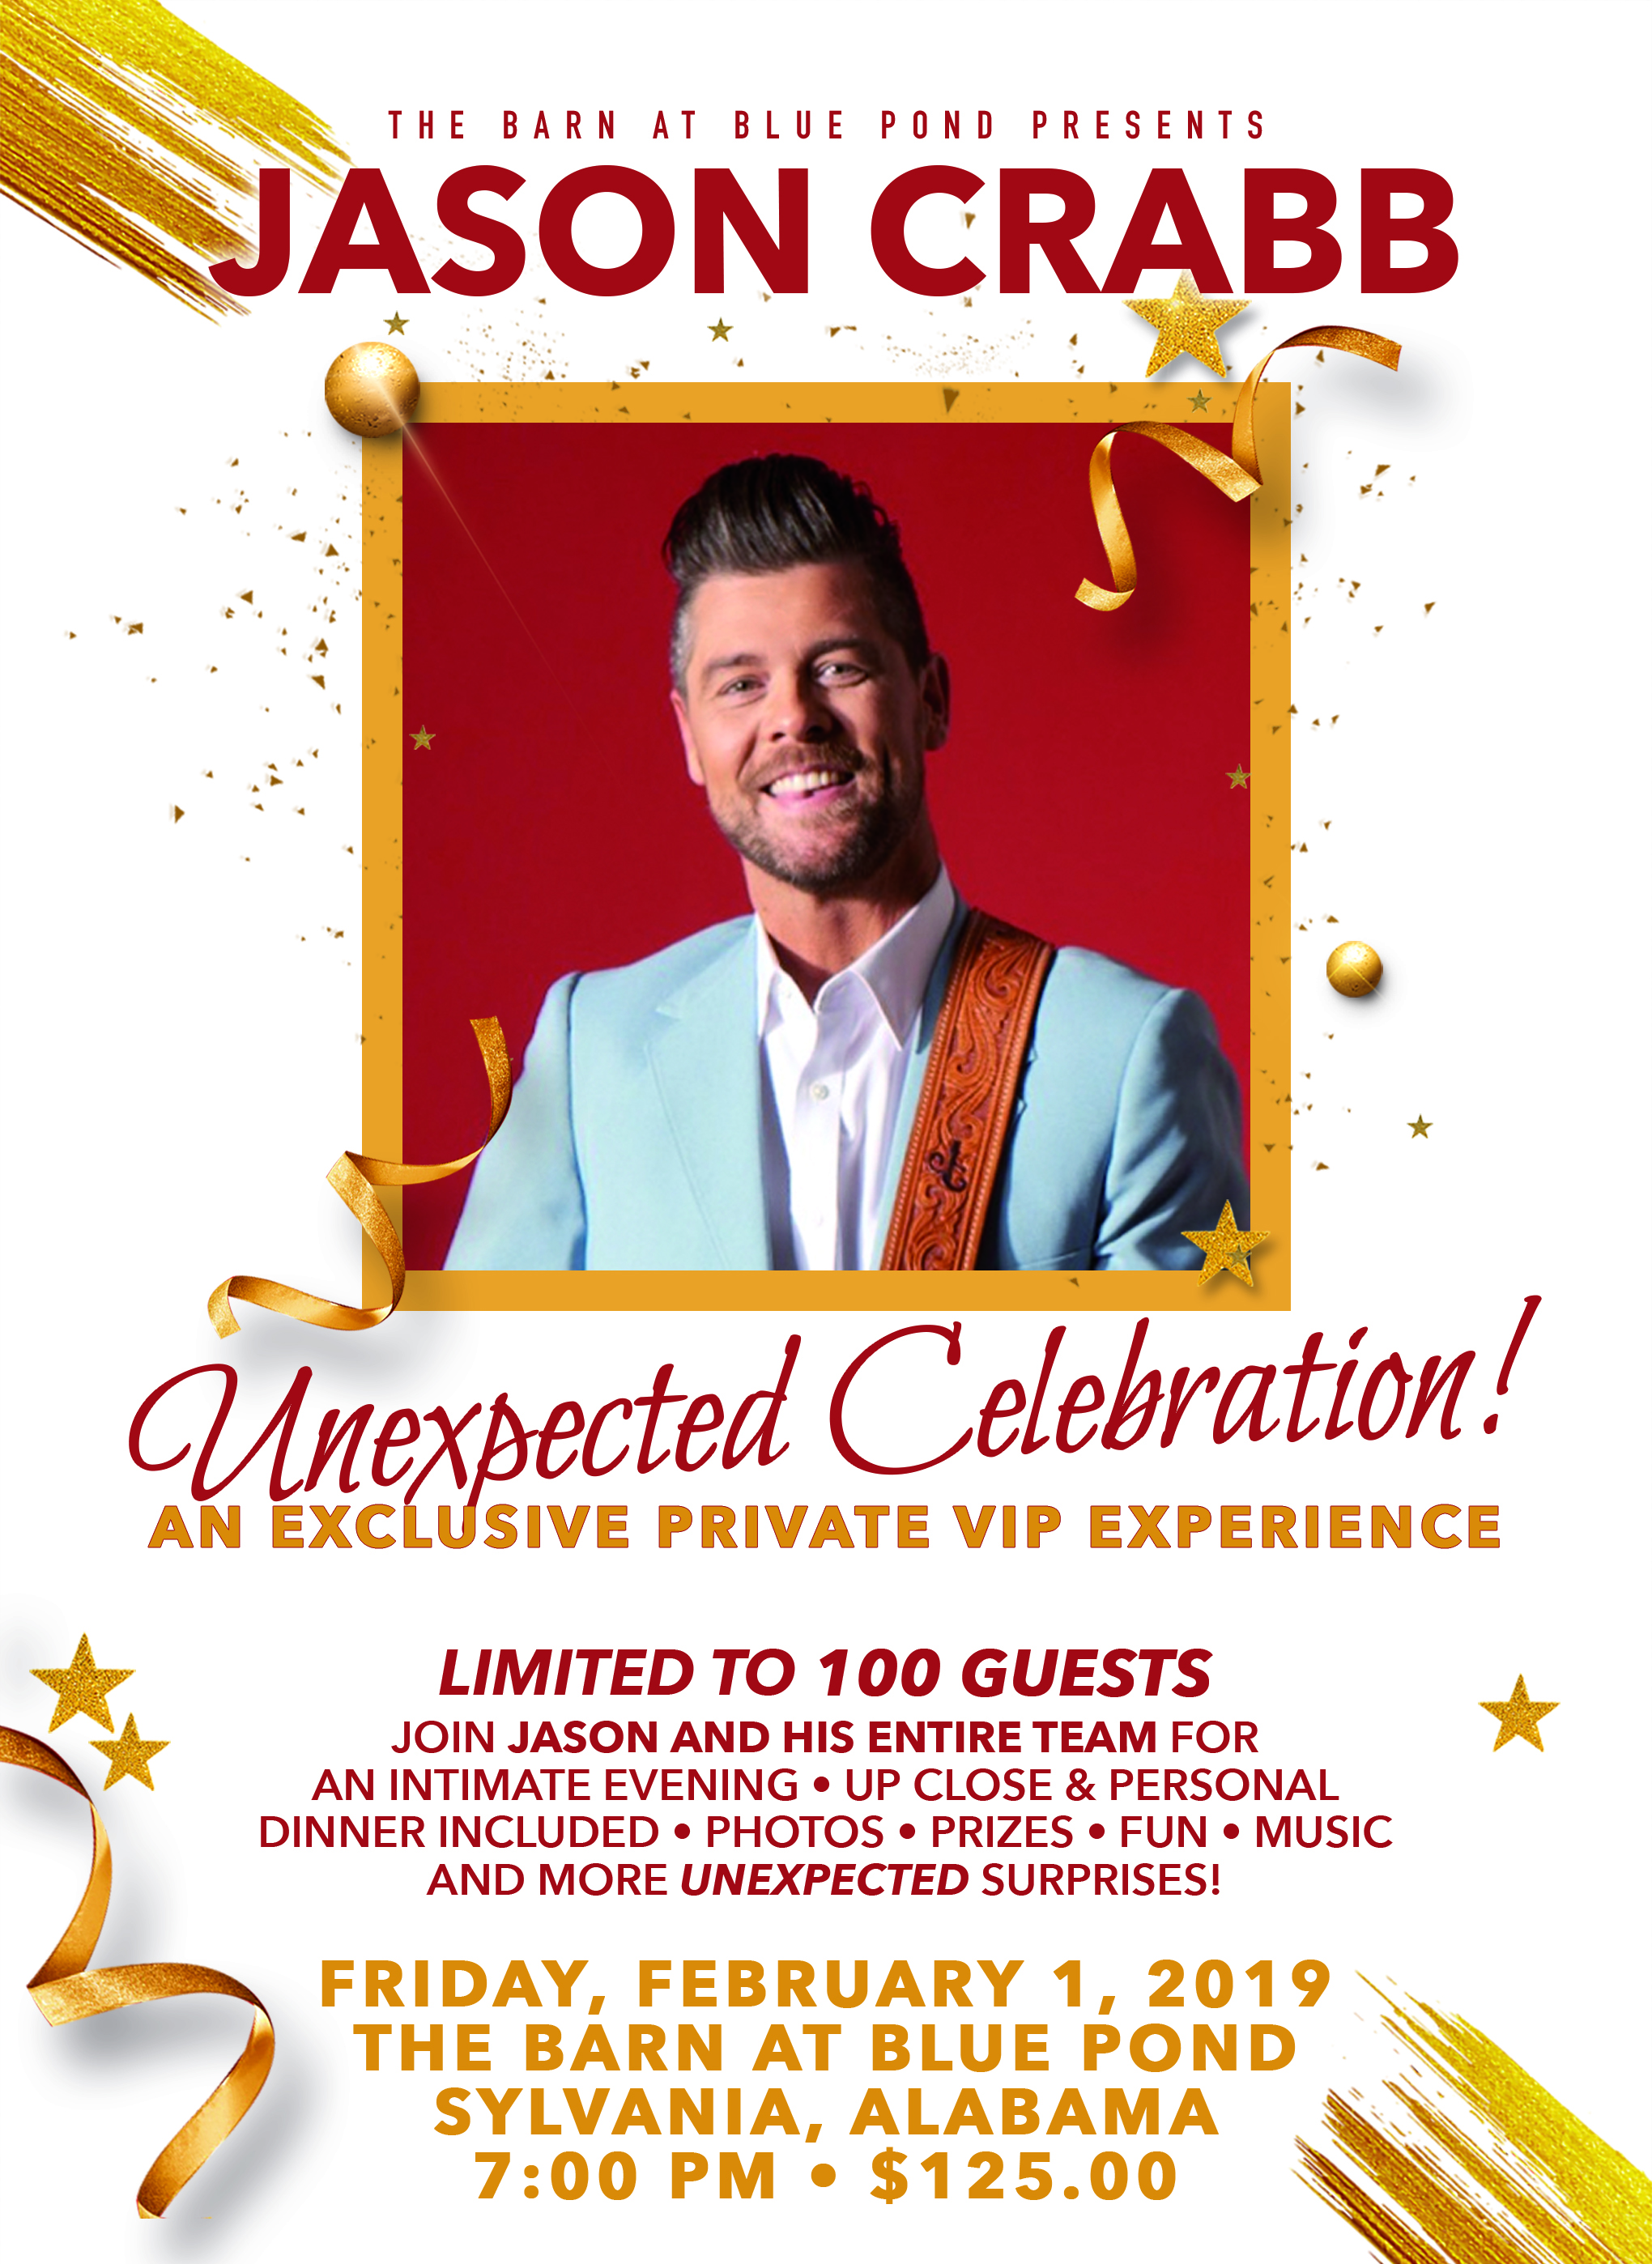 Jason Crabb Unexpected Celebration